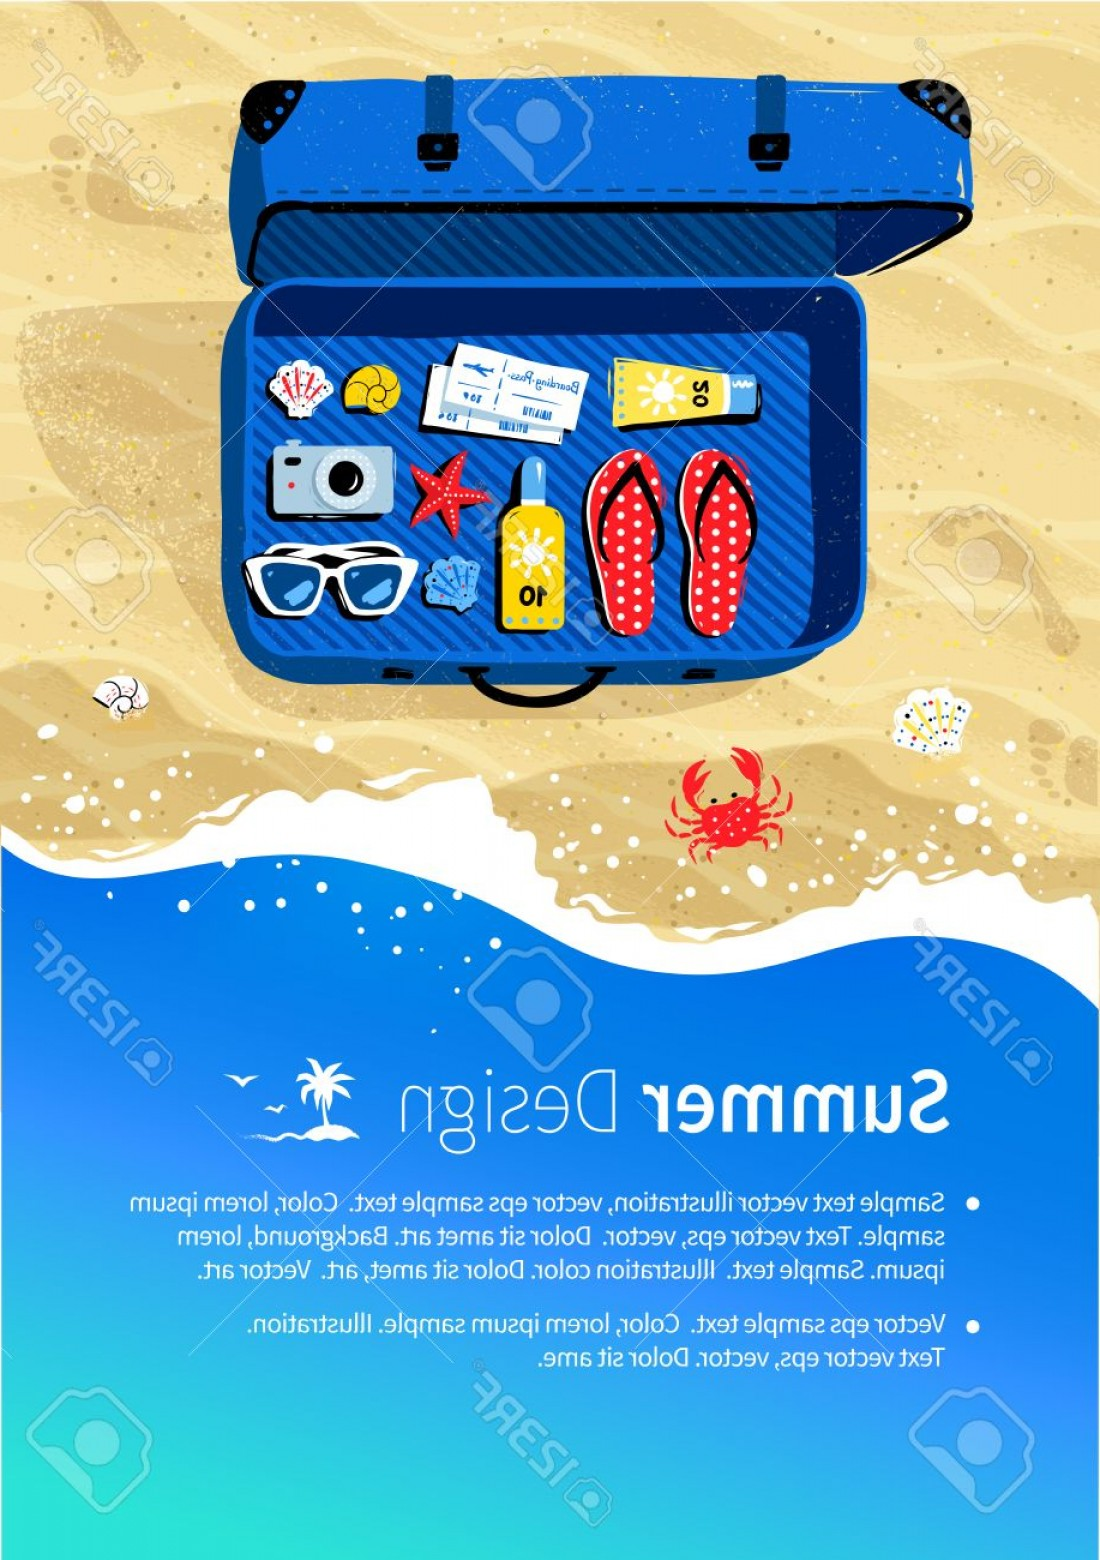 Vector Travel APS: Photostock Vector Summer Vacation Flyer Design With Top View Travel Suitcase With Accessories On Beach Sand And Sea Su